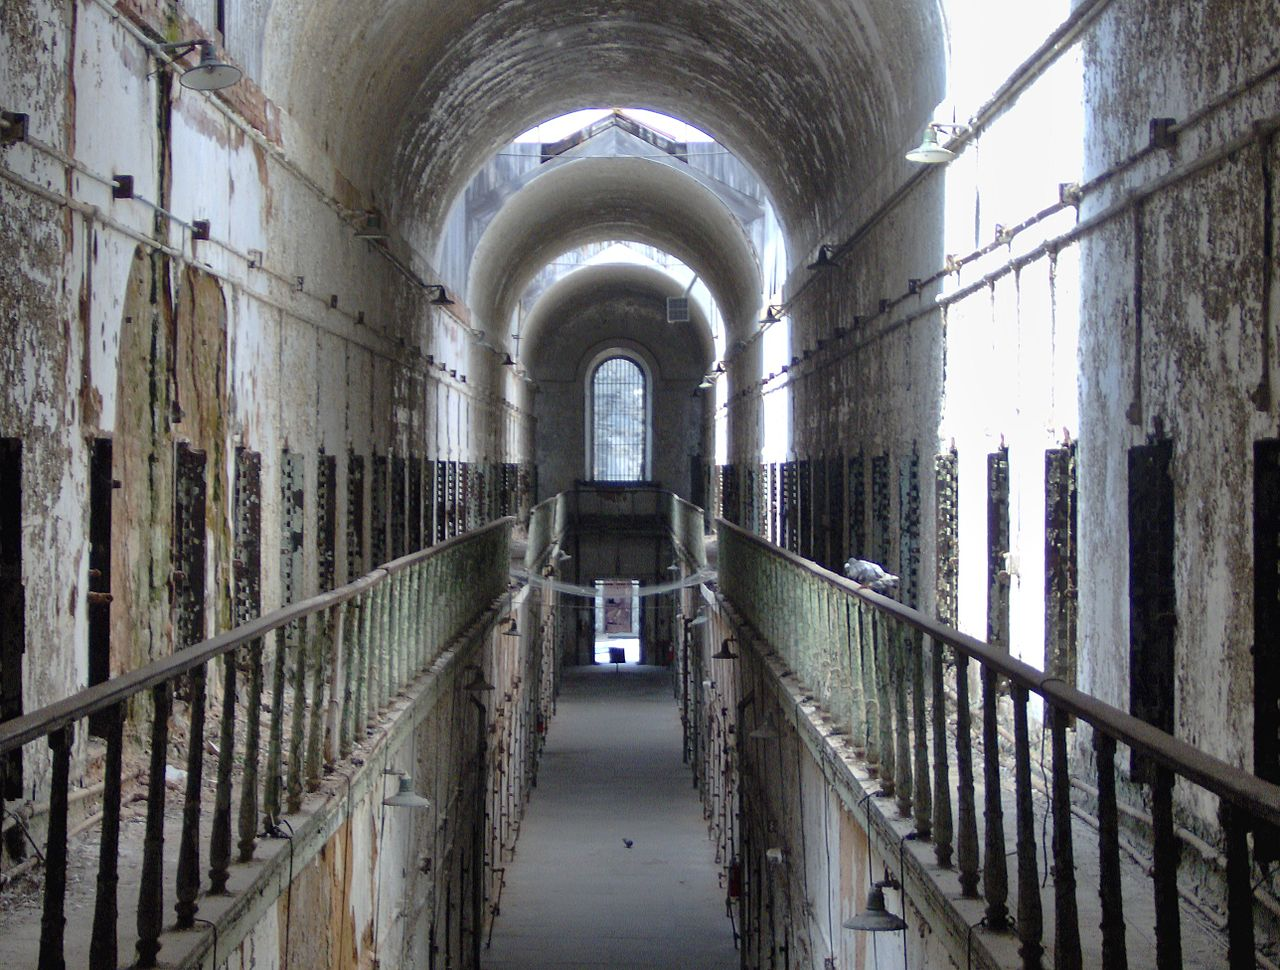 eastern state penitentiary, hallway, abandoned places